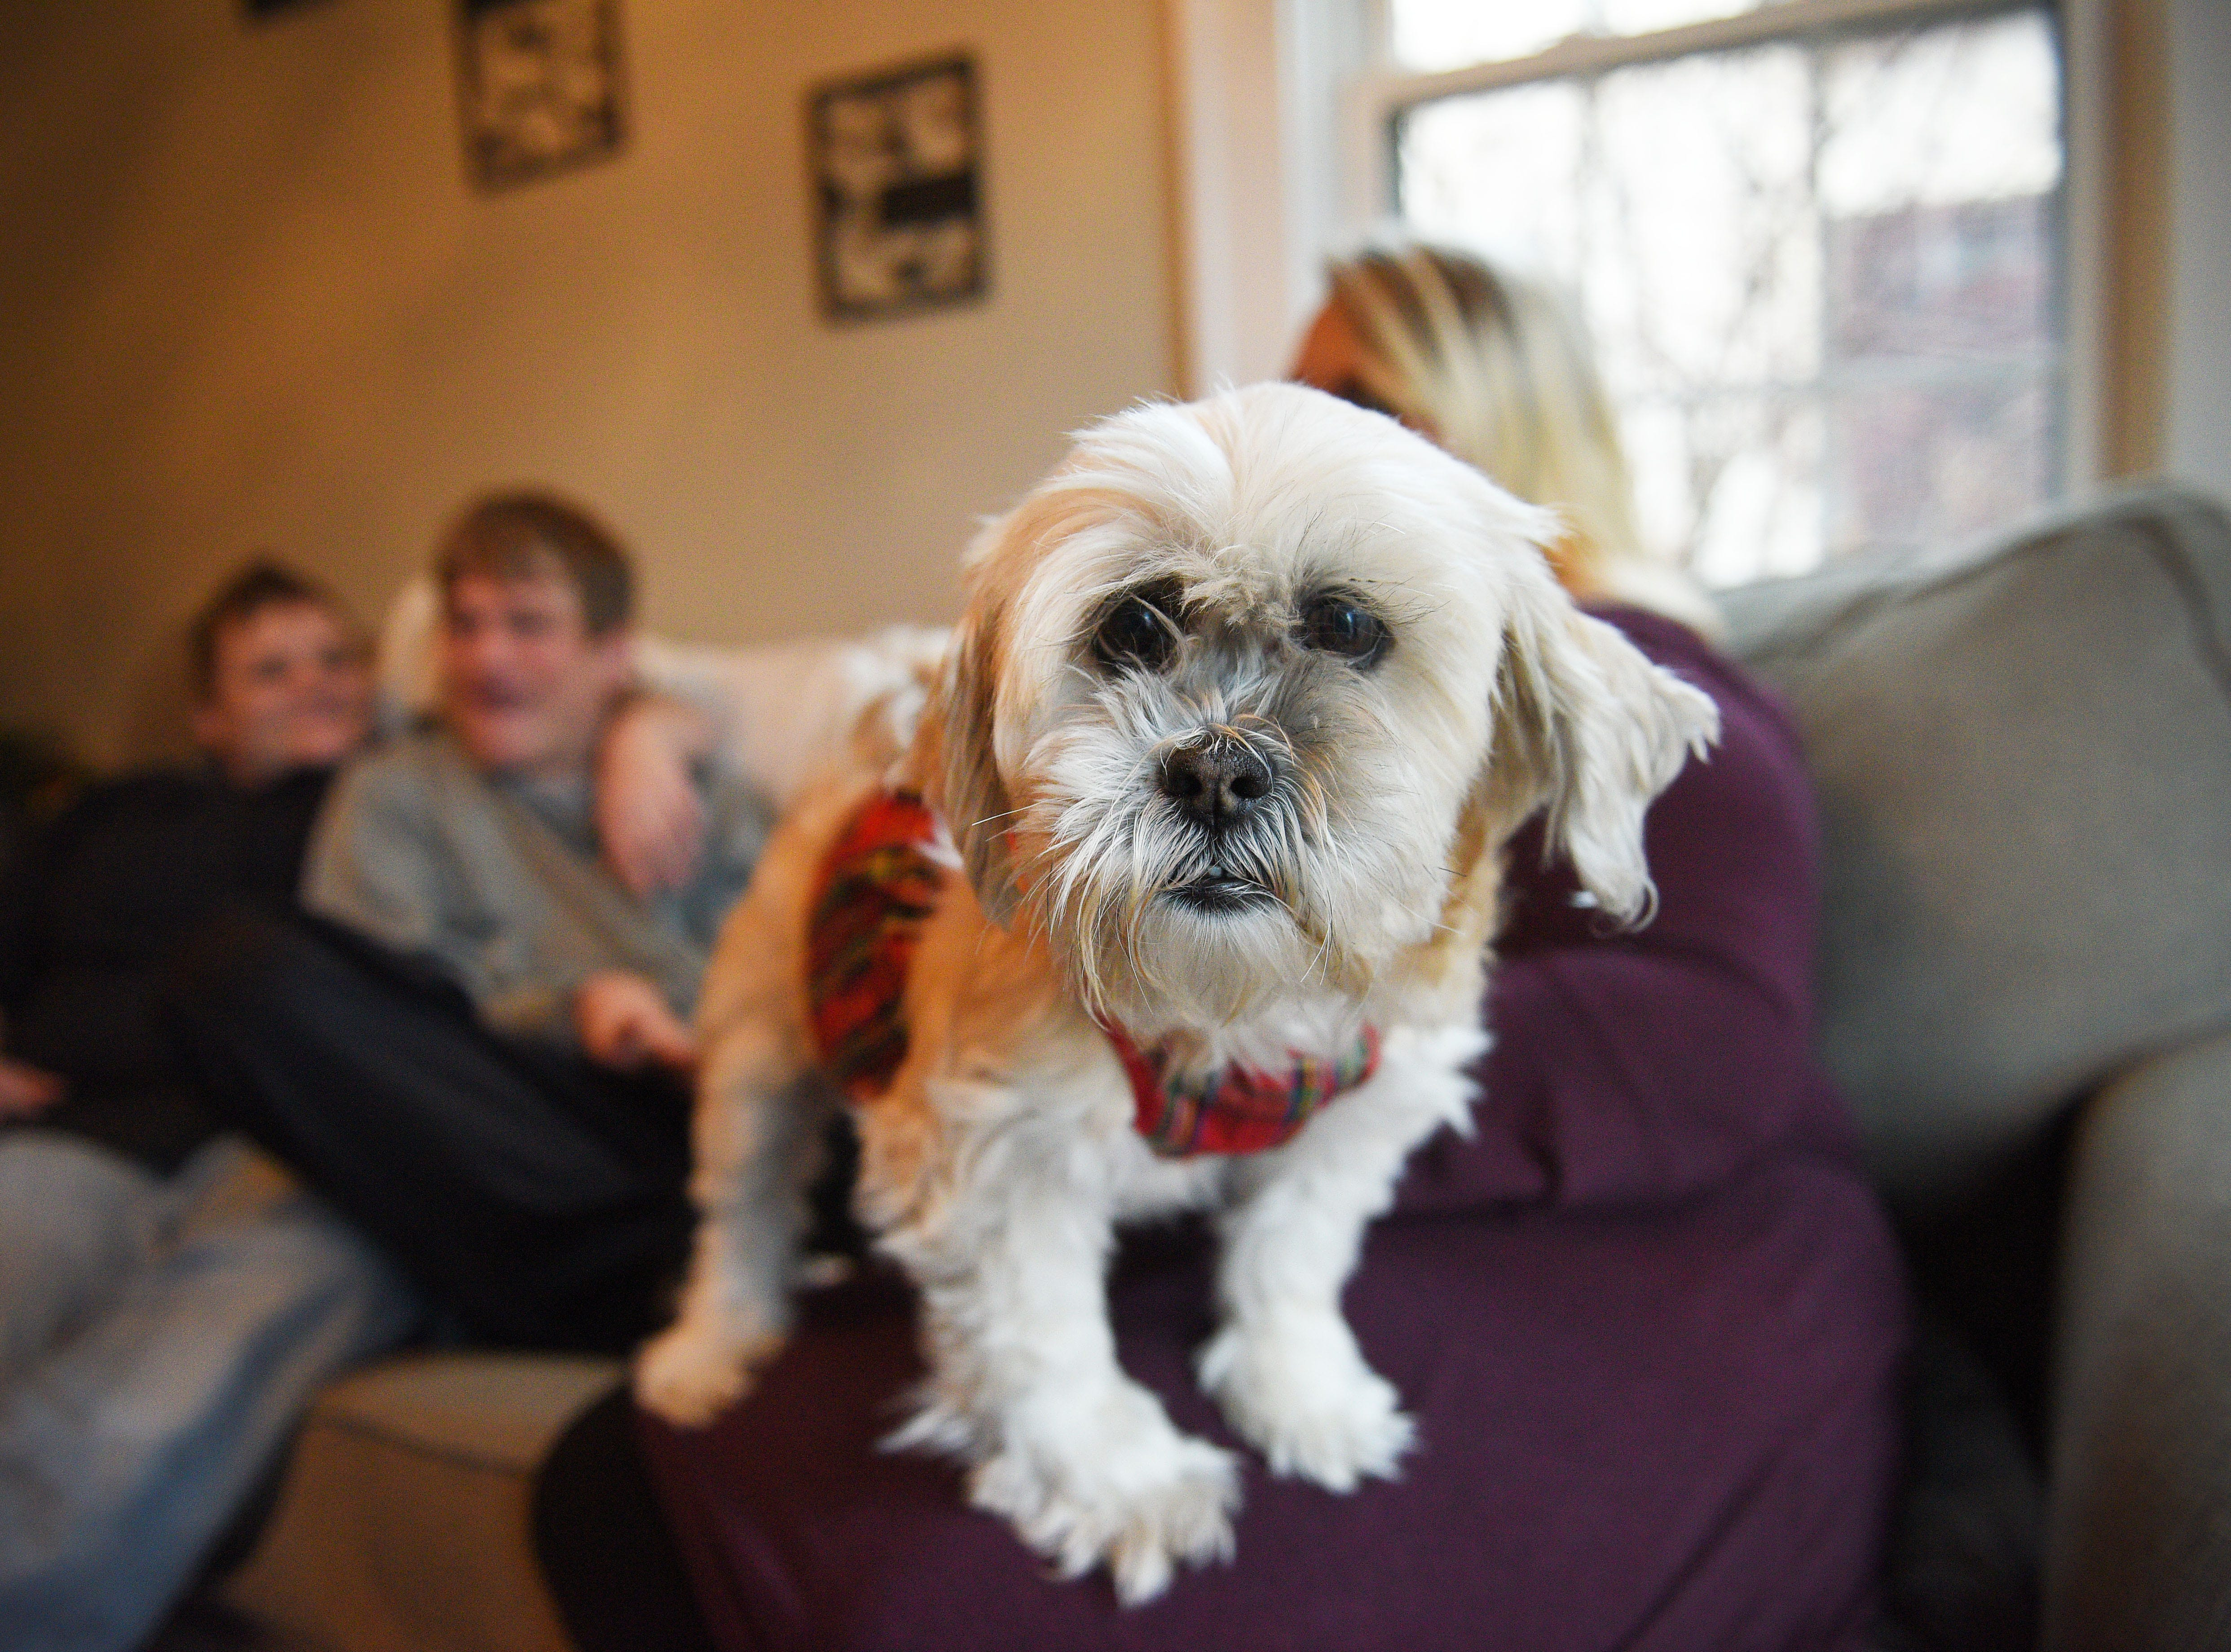 Chu Chi keeps an eye on visitors at Ben Graff's home Wednesday, Nov. 7, in Sioux Falls. Graff lives with Shared Living Provider Kayla Harris and roommate Jenna Askelson. Harris and Askelson provide care for Ben daily so that he can live independently from his parents Debbie and Neil Graff.